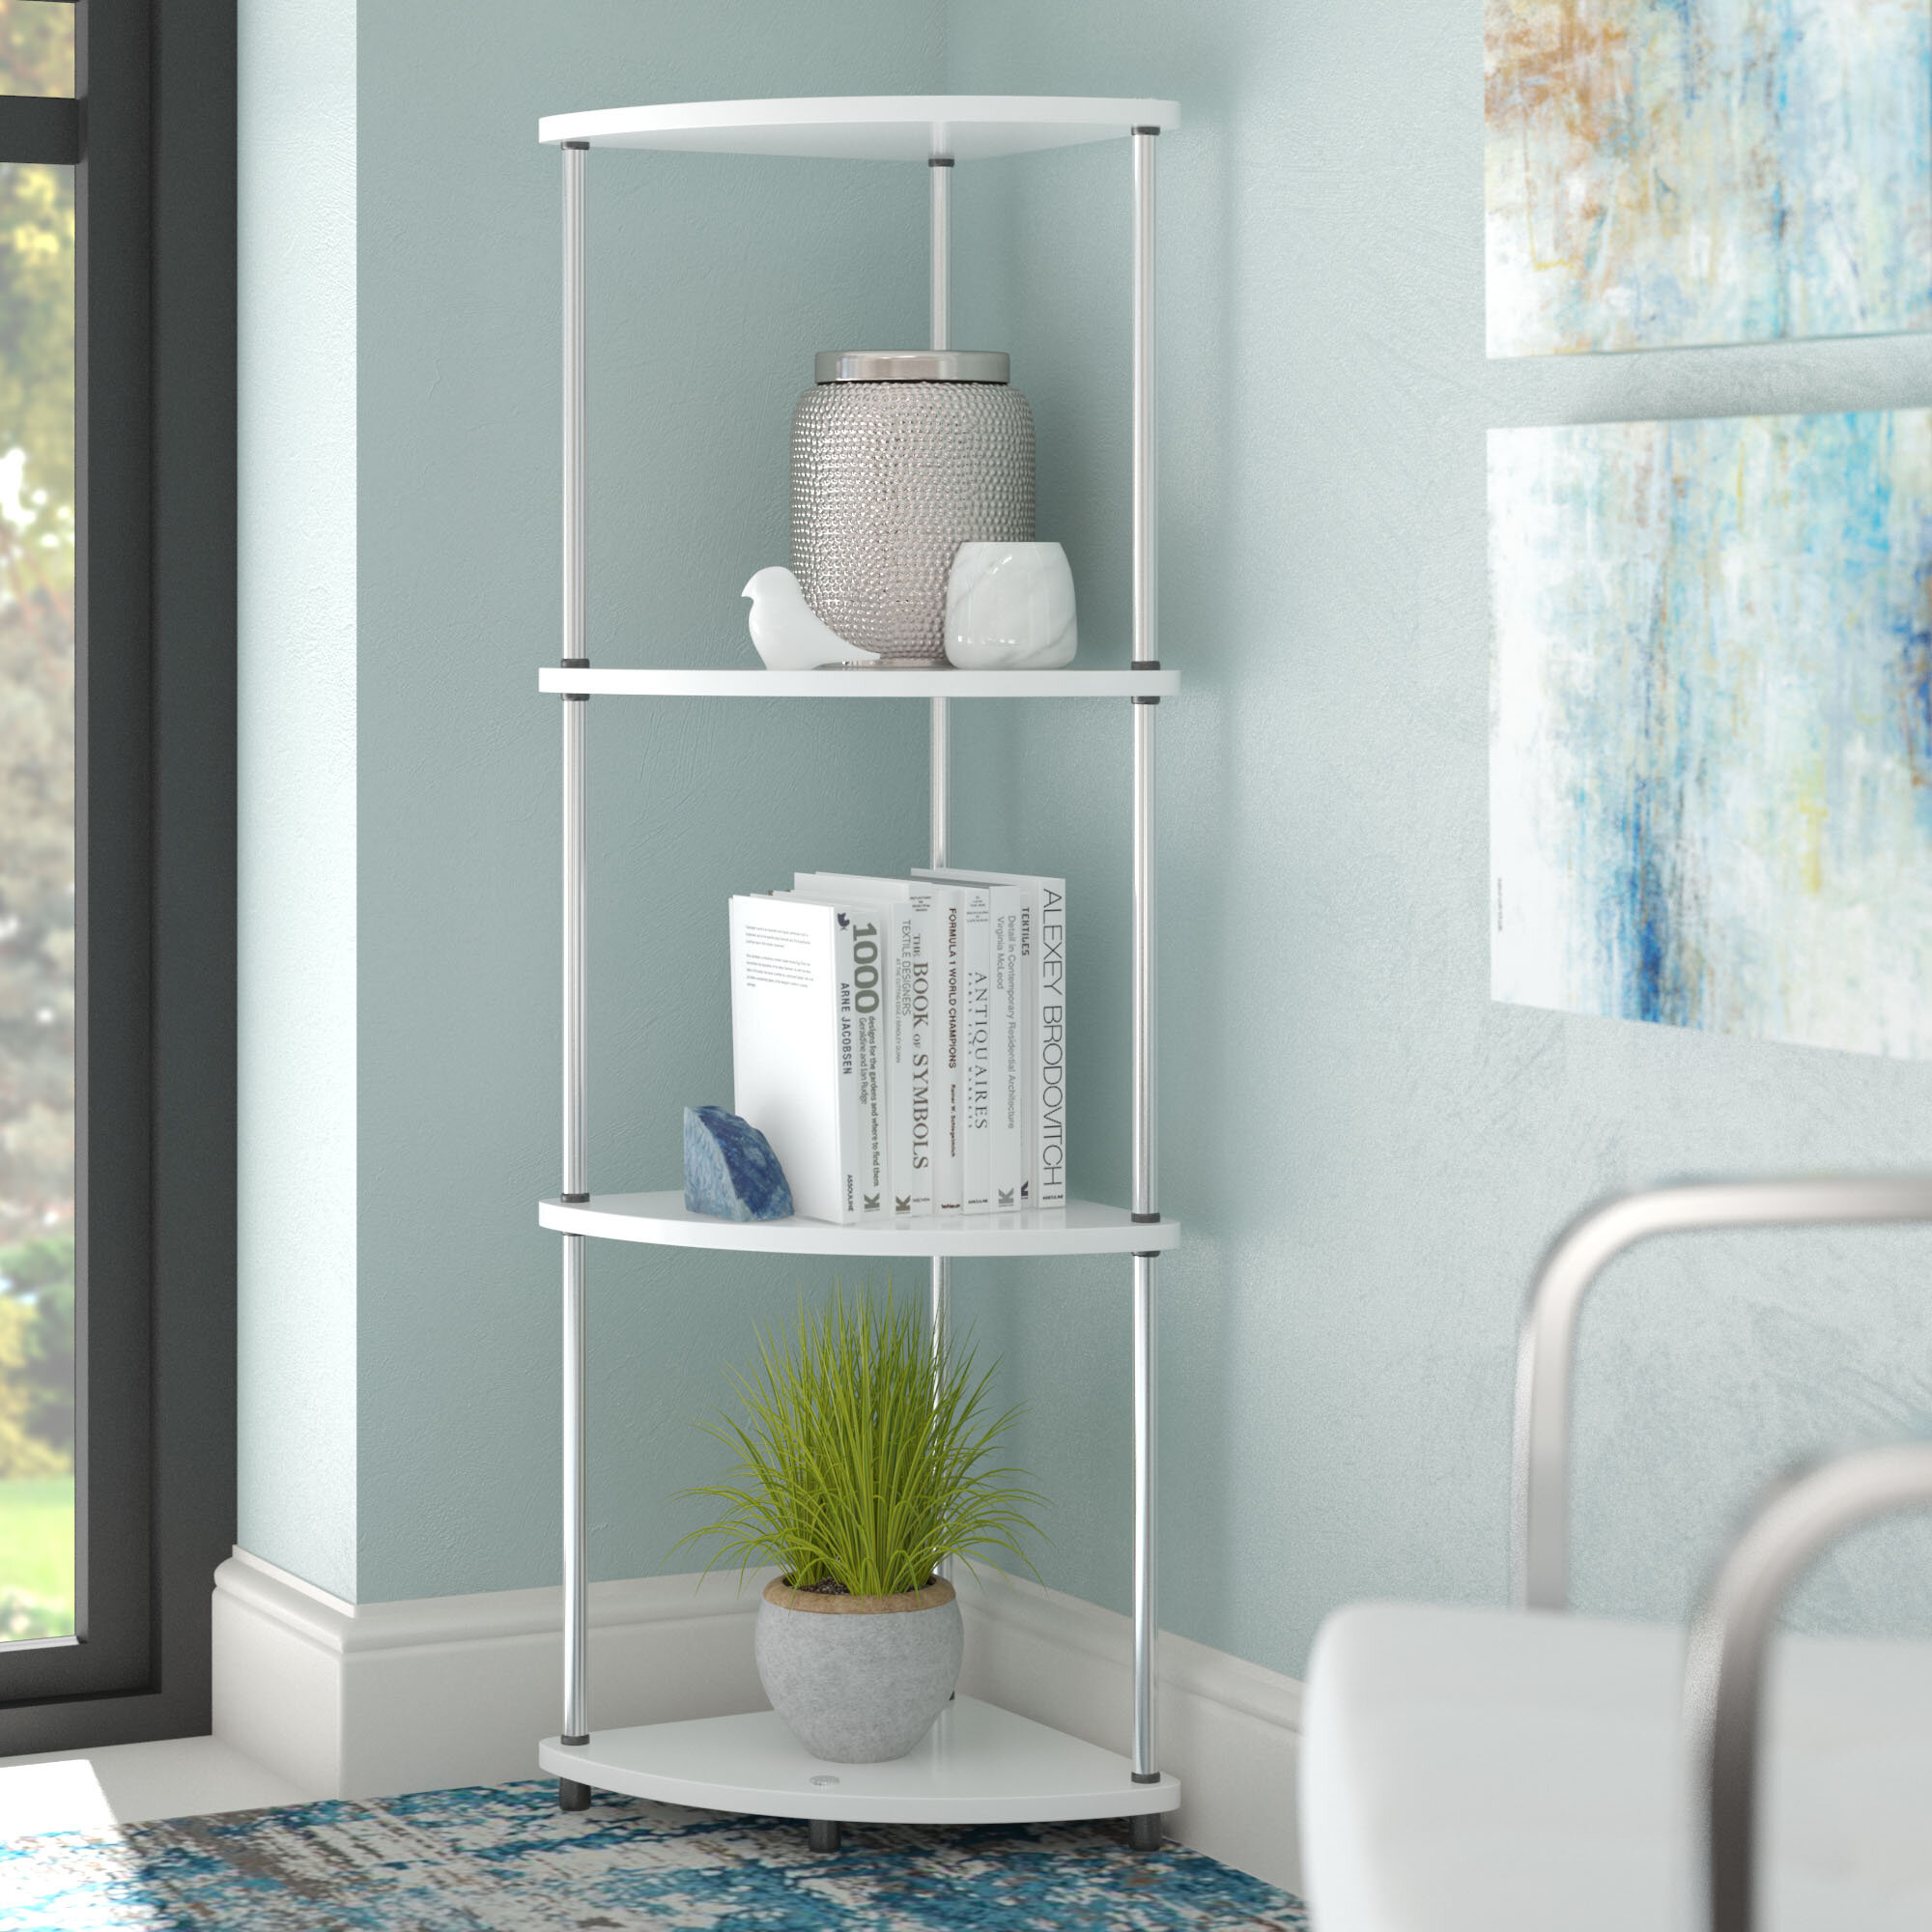 Zipcode Design Nova 4 Tier Corner Unit Bookcase & Reviews | Wayfair